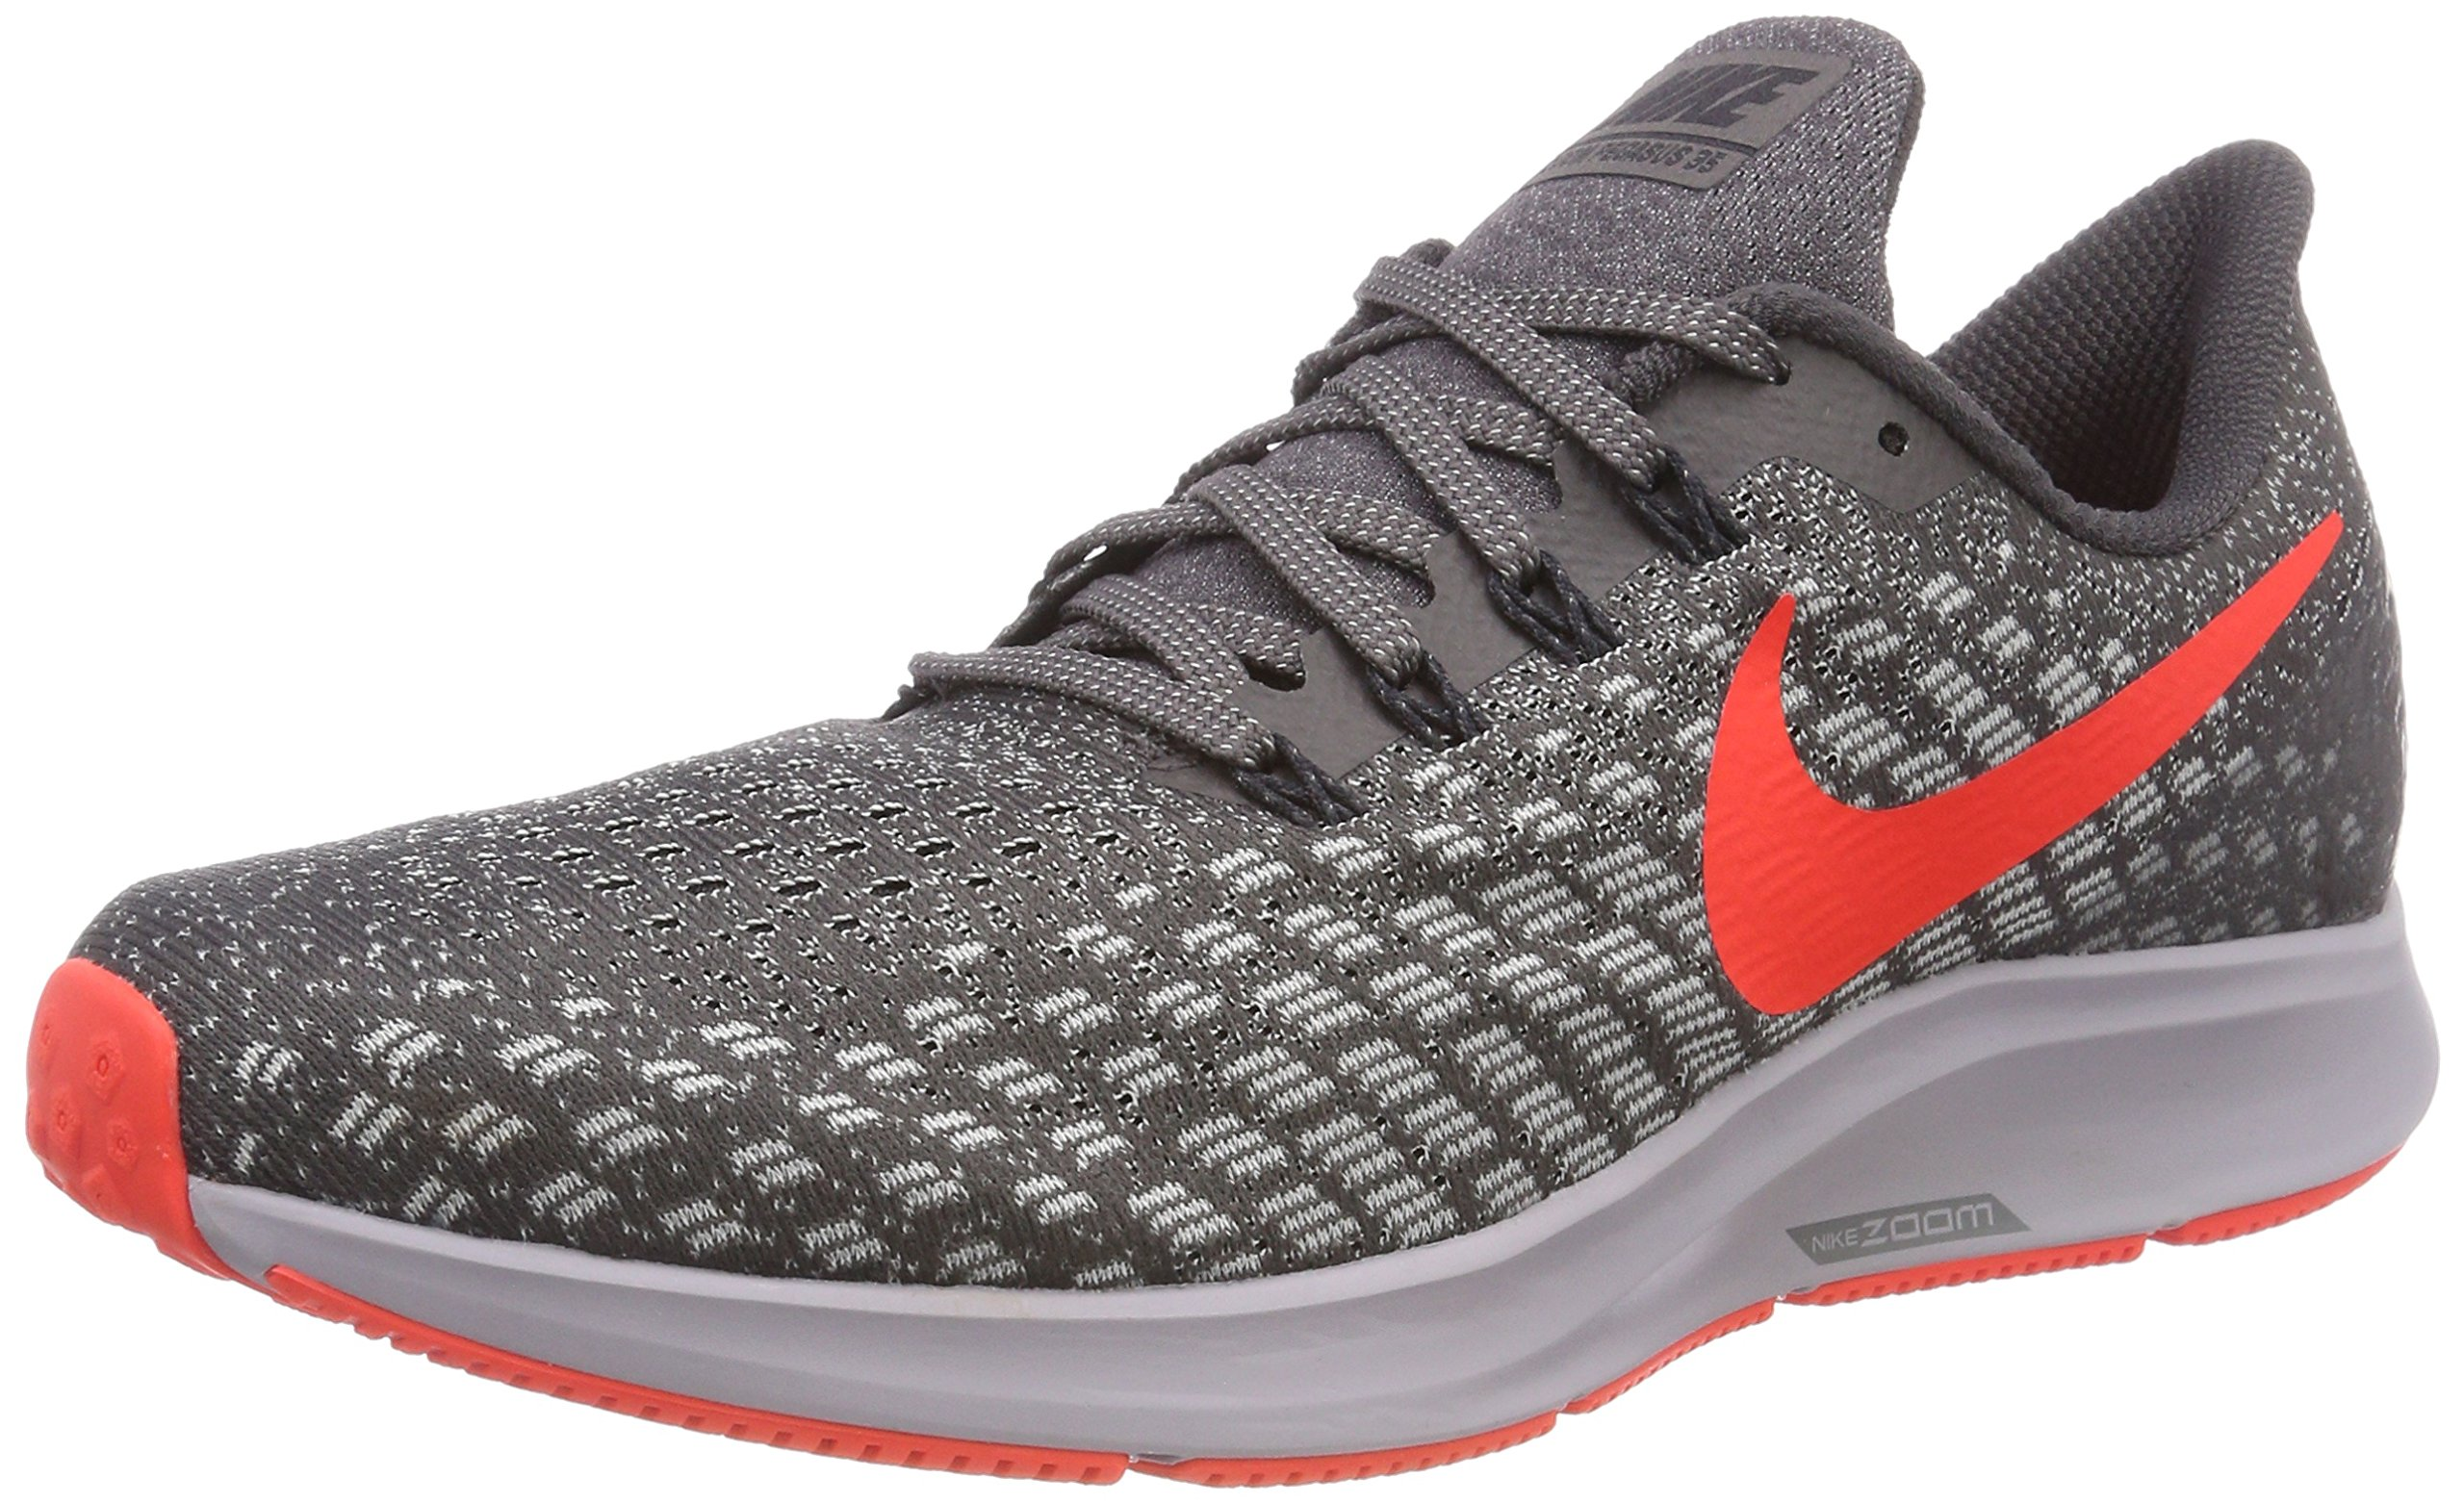 outlet store 5e7bb 198a3 Nike Men's Air Zoom Pegasus 35 Thunder Grey/Bright Crimson Ankle-High Mesh  Running Shoe - 6.5M